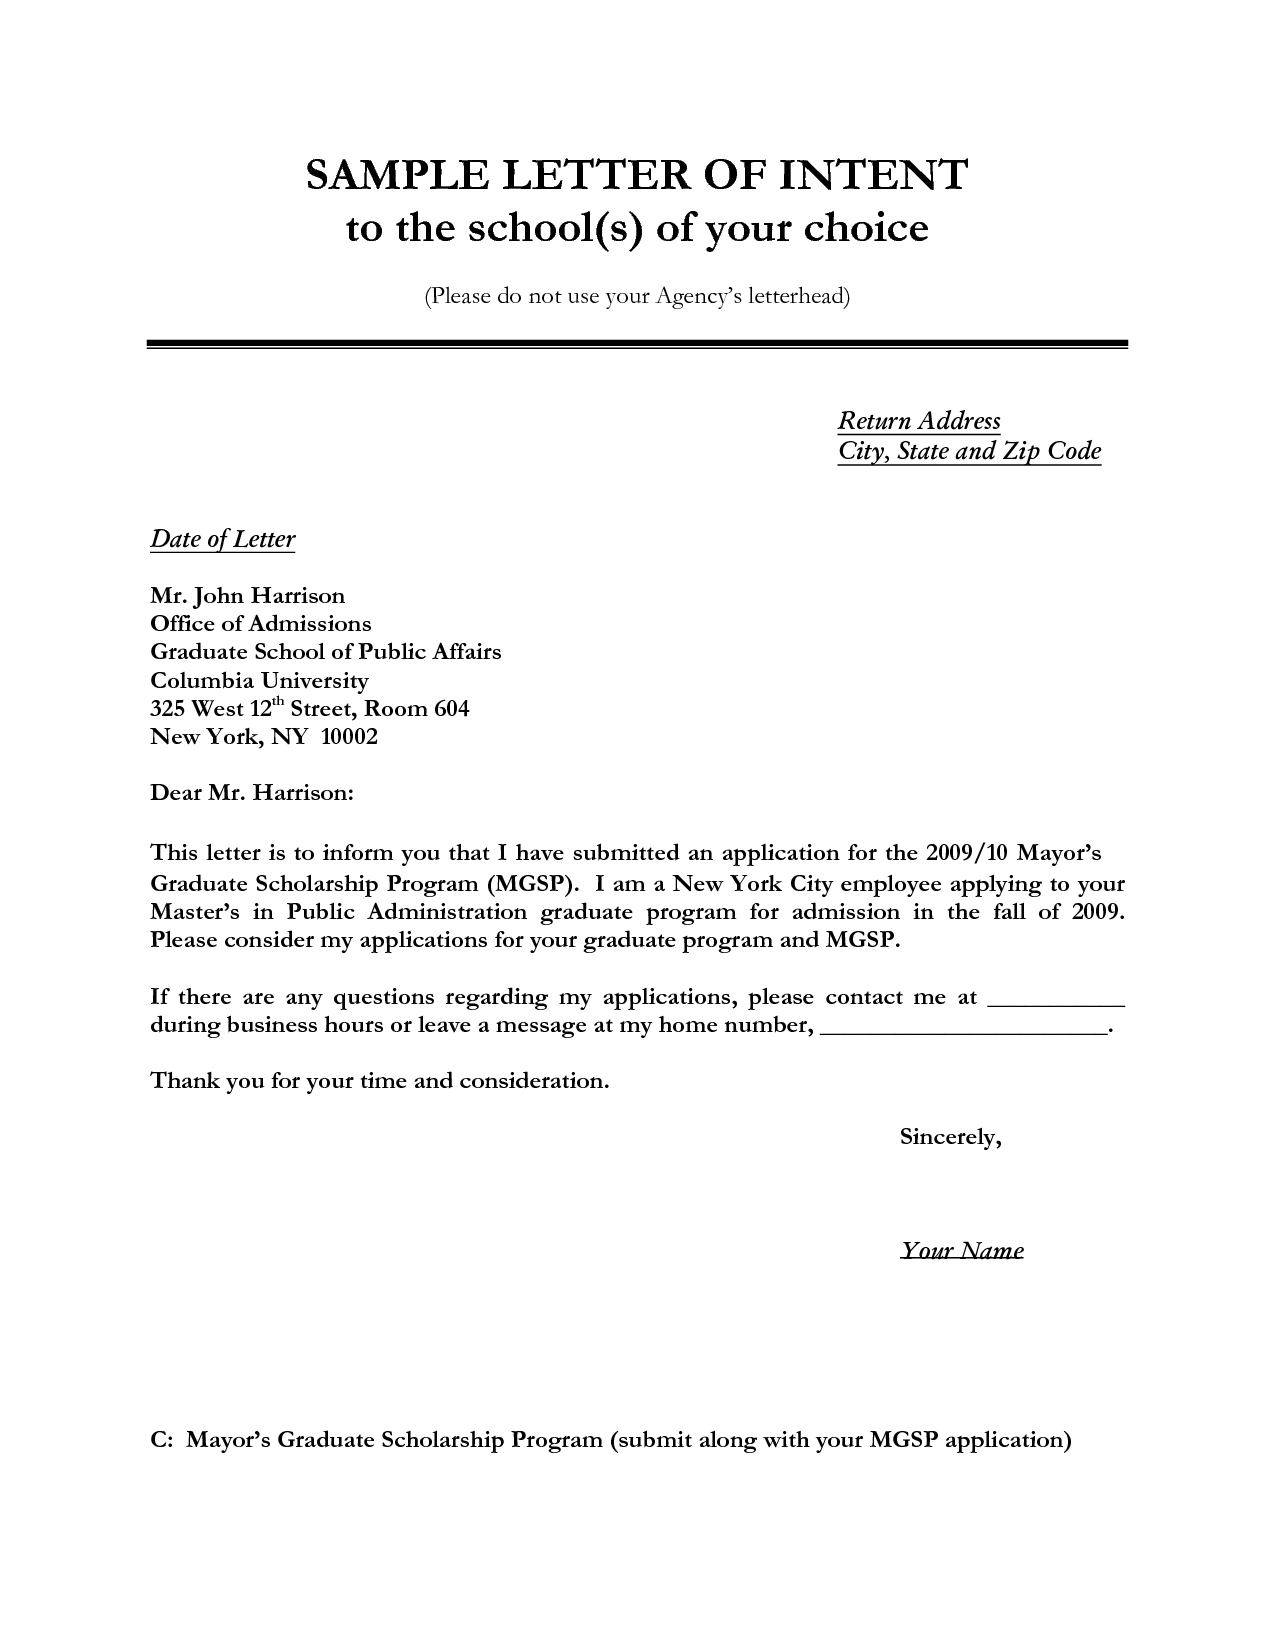 Affidavit Letter Template - Letter Of Intent Sample